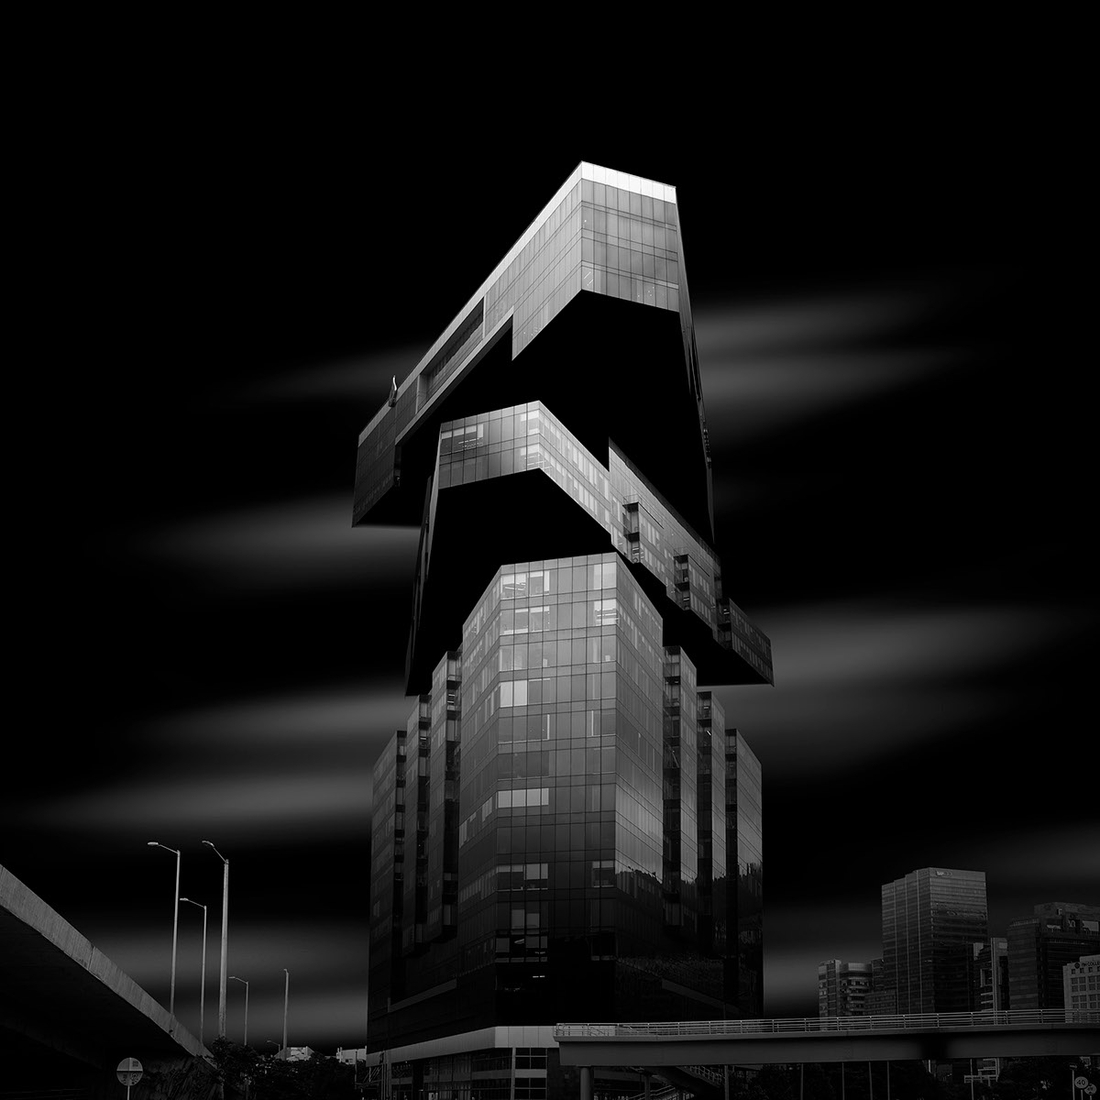 10-Daniel-Garay-Arango-Black-and-White-Surreal-Photographs-Architectural-Deconstruction-www-designstack-co